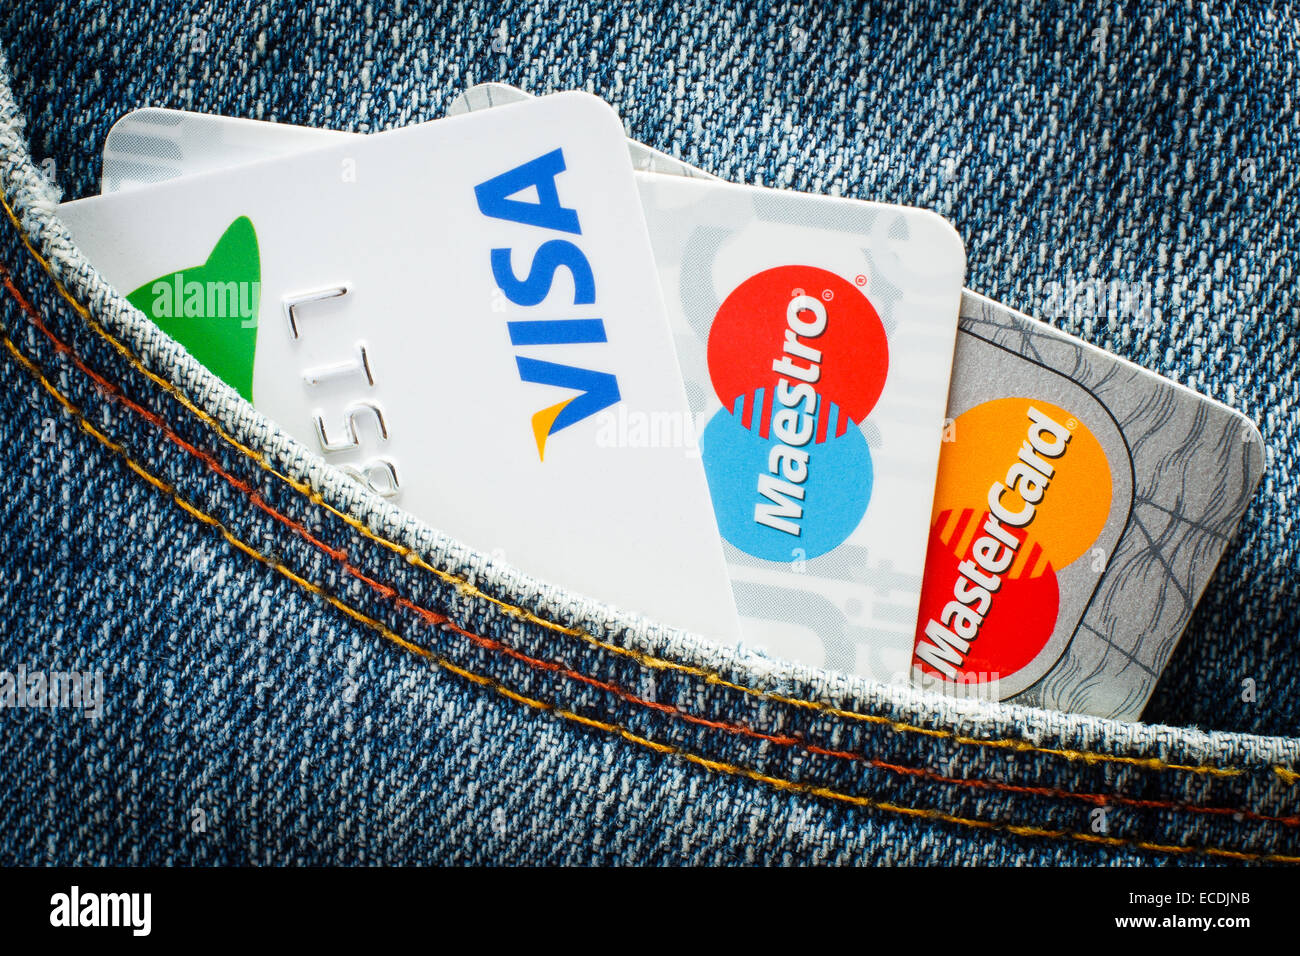 GDANSK, POLAND - 10 JULY 2014. Mastercard, Maestro and Visa credit cards  in jeans pocket. Editorial use only - Stock Image